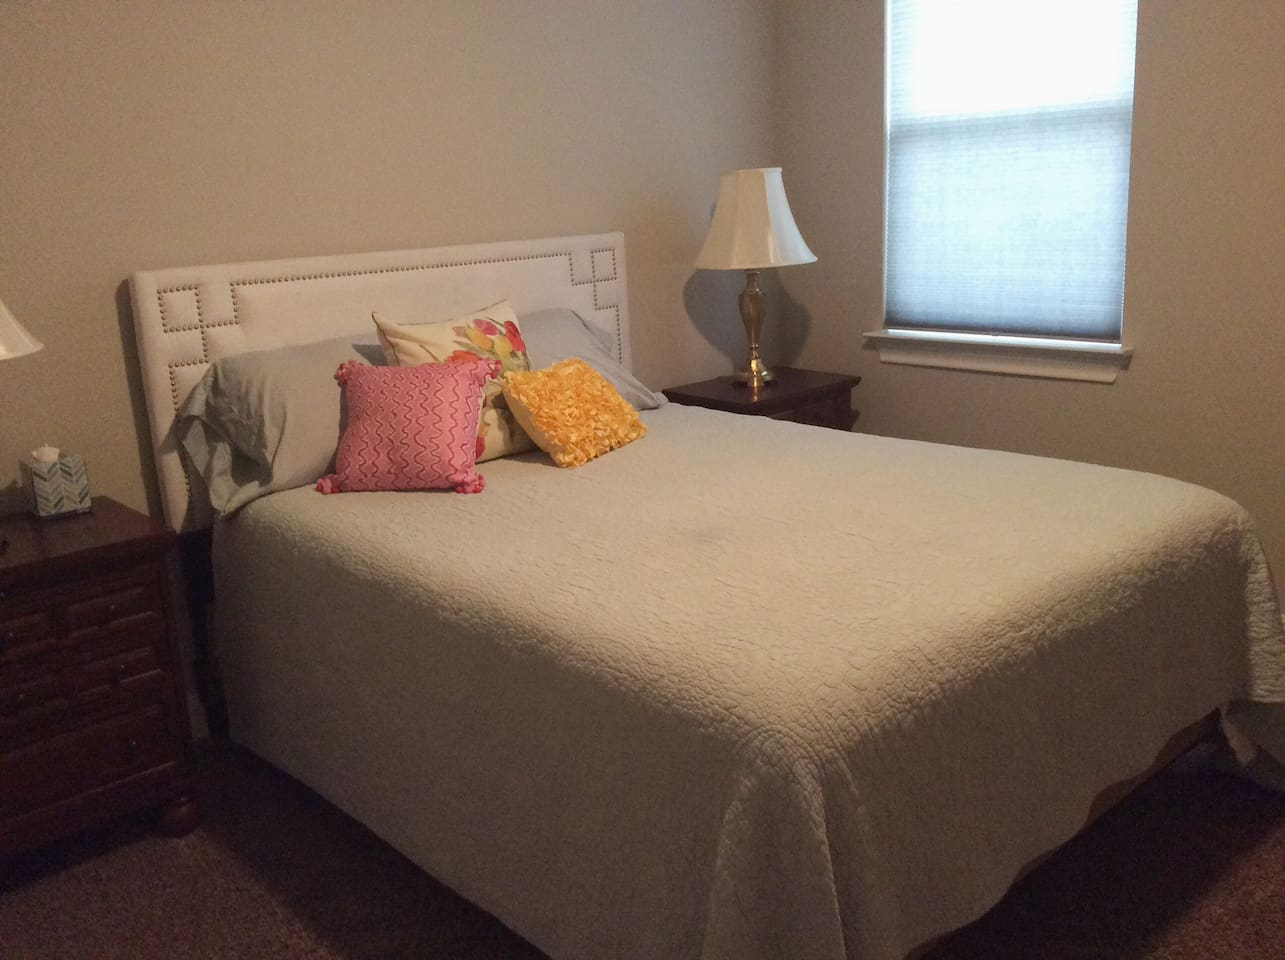 Queen size bed with new iComfort mattress.